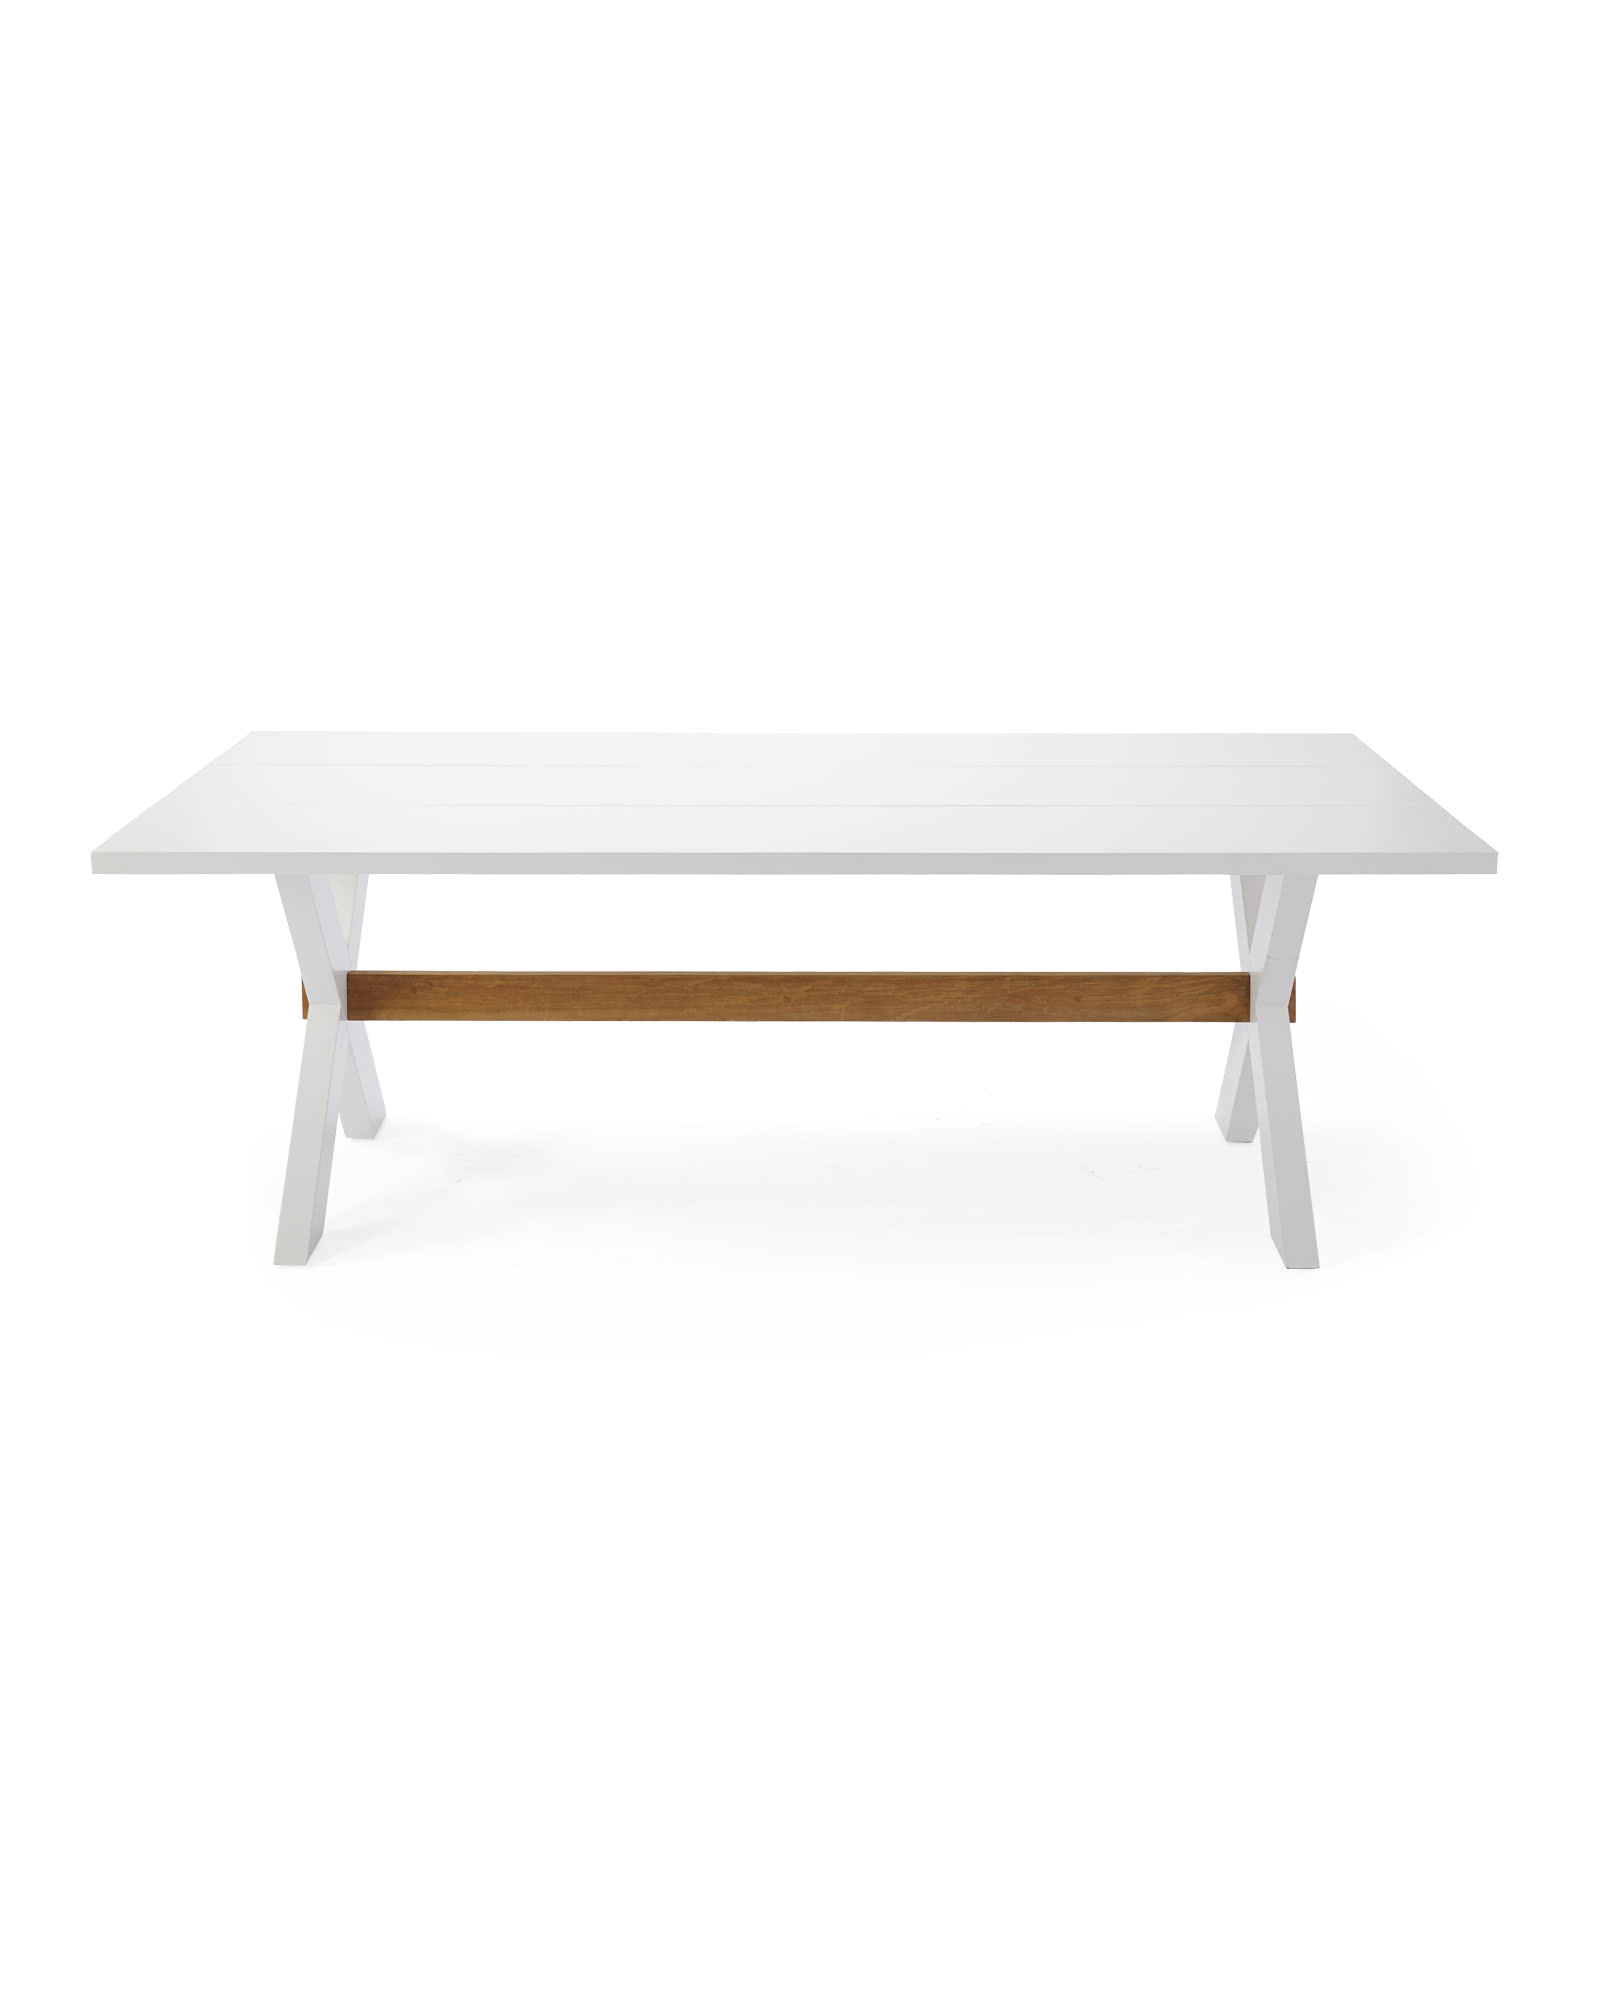 California Dining Table